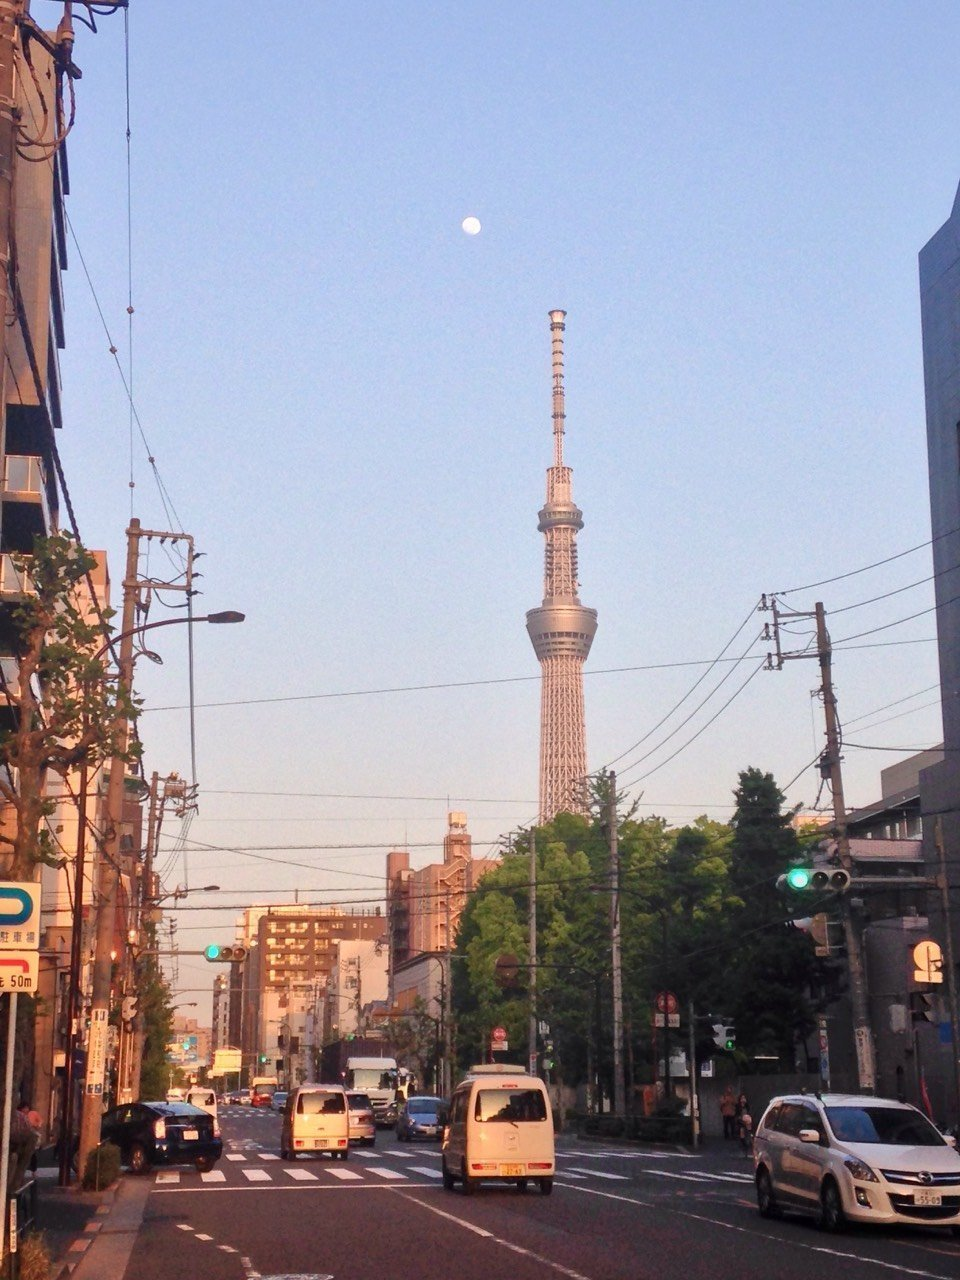 Tokyo Sky Tree is also a walking distance